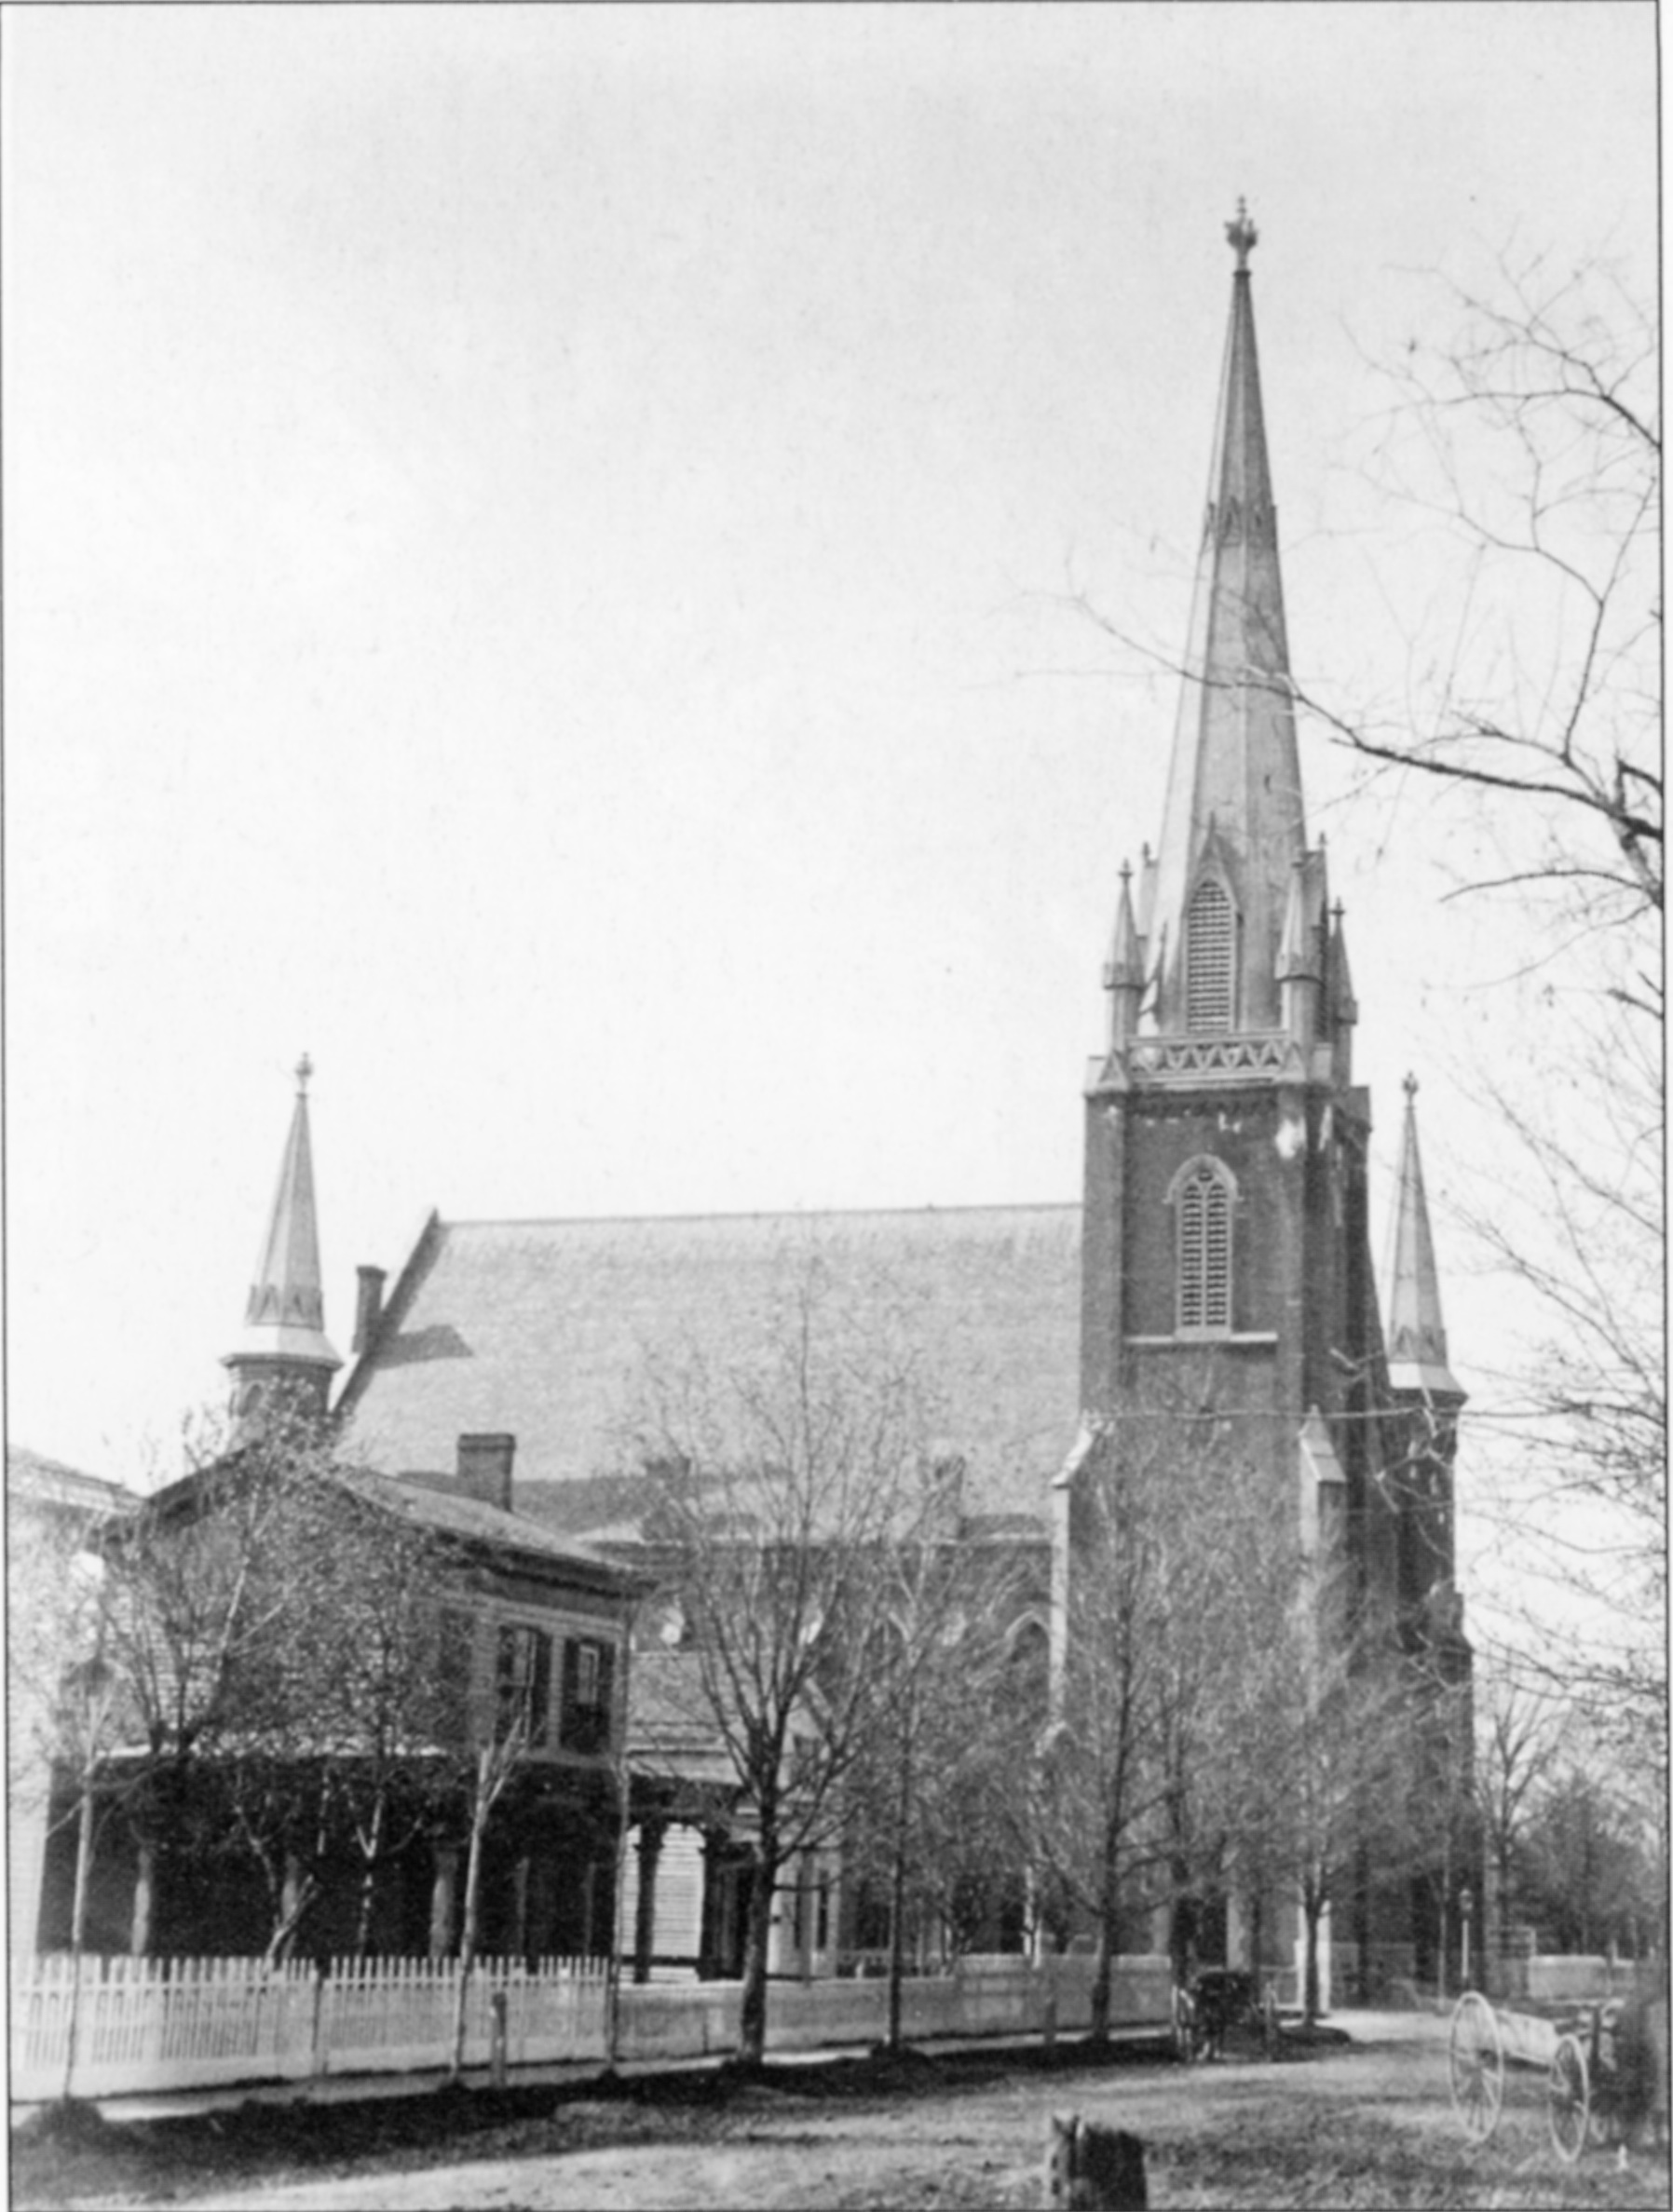 First Methodist Episcopal church, 1866 image